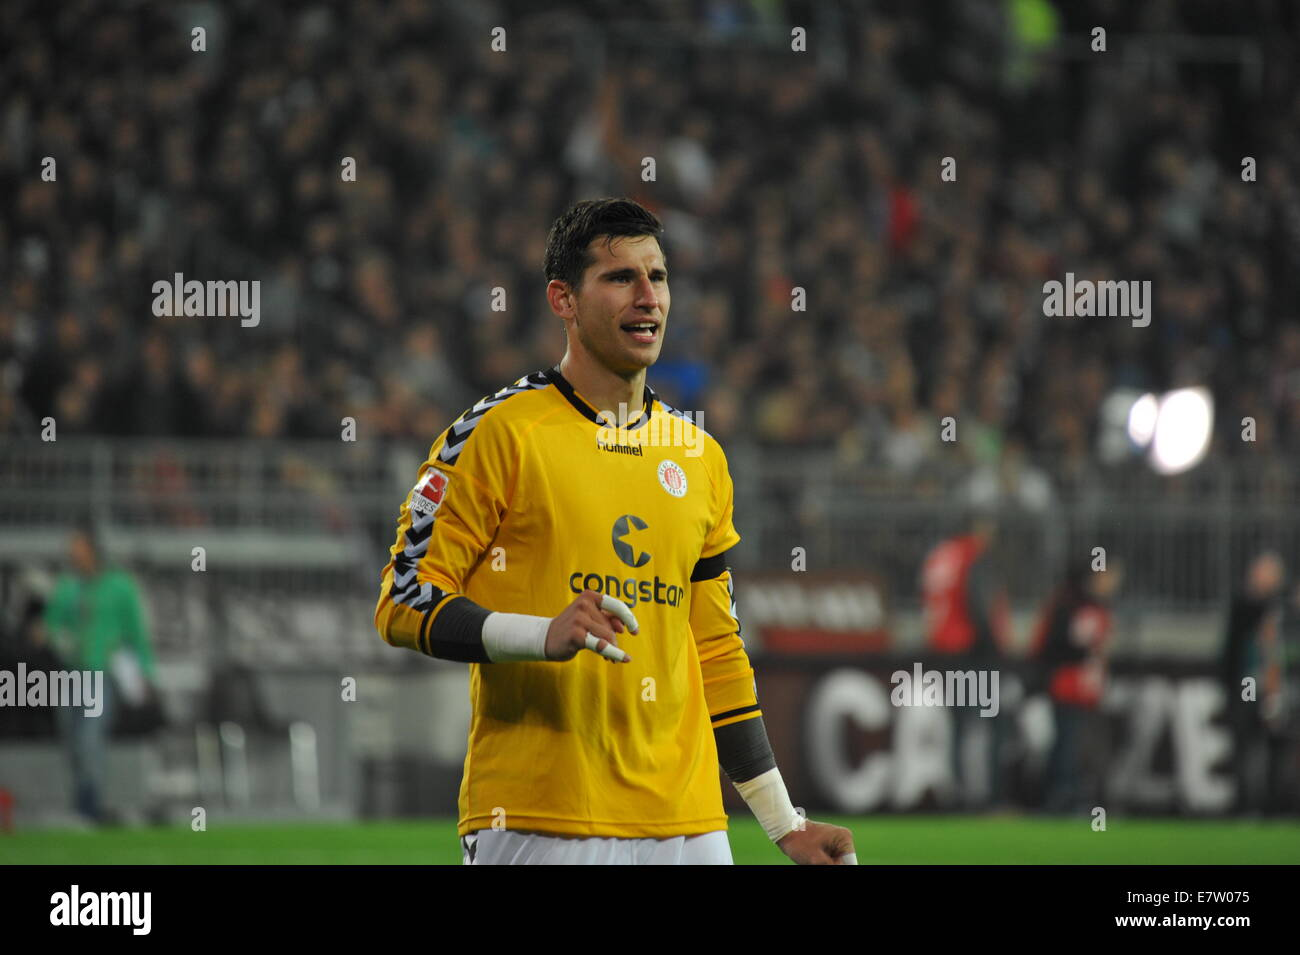 FC St. Pauli Keeper Philipp Heerwagen, DFB-Pokal, Hamburg, Germany. Editorial use only. Stock Photo